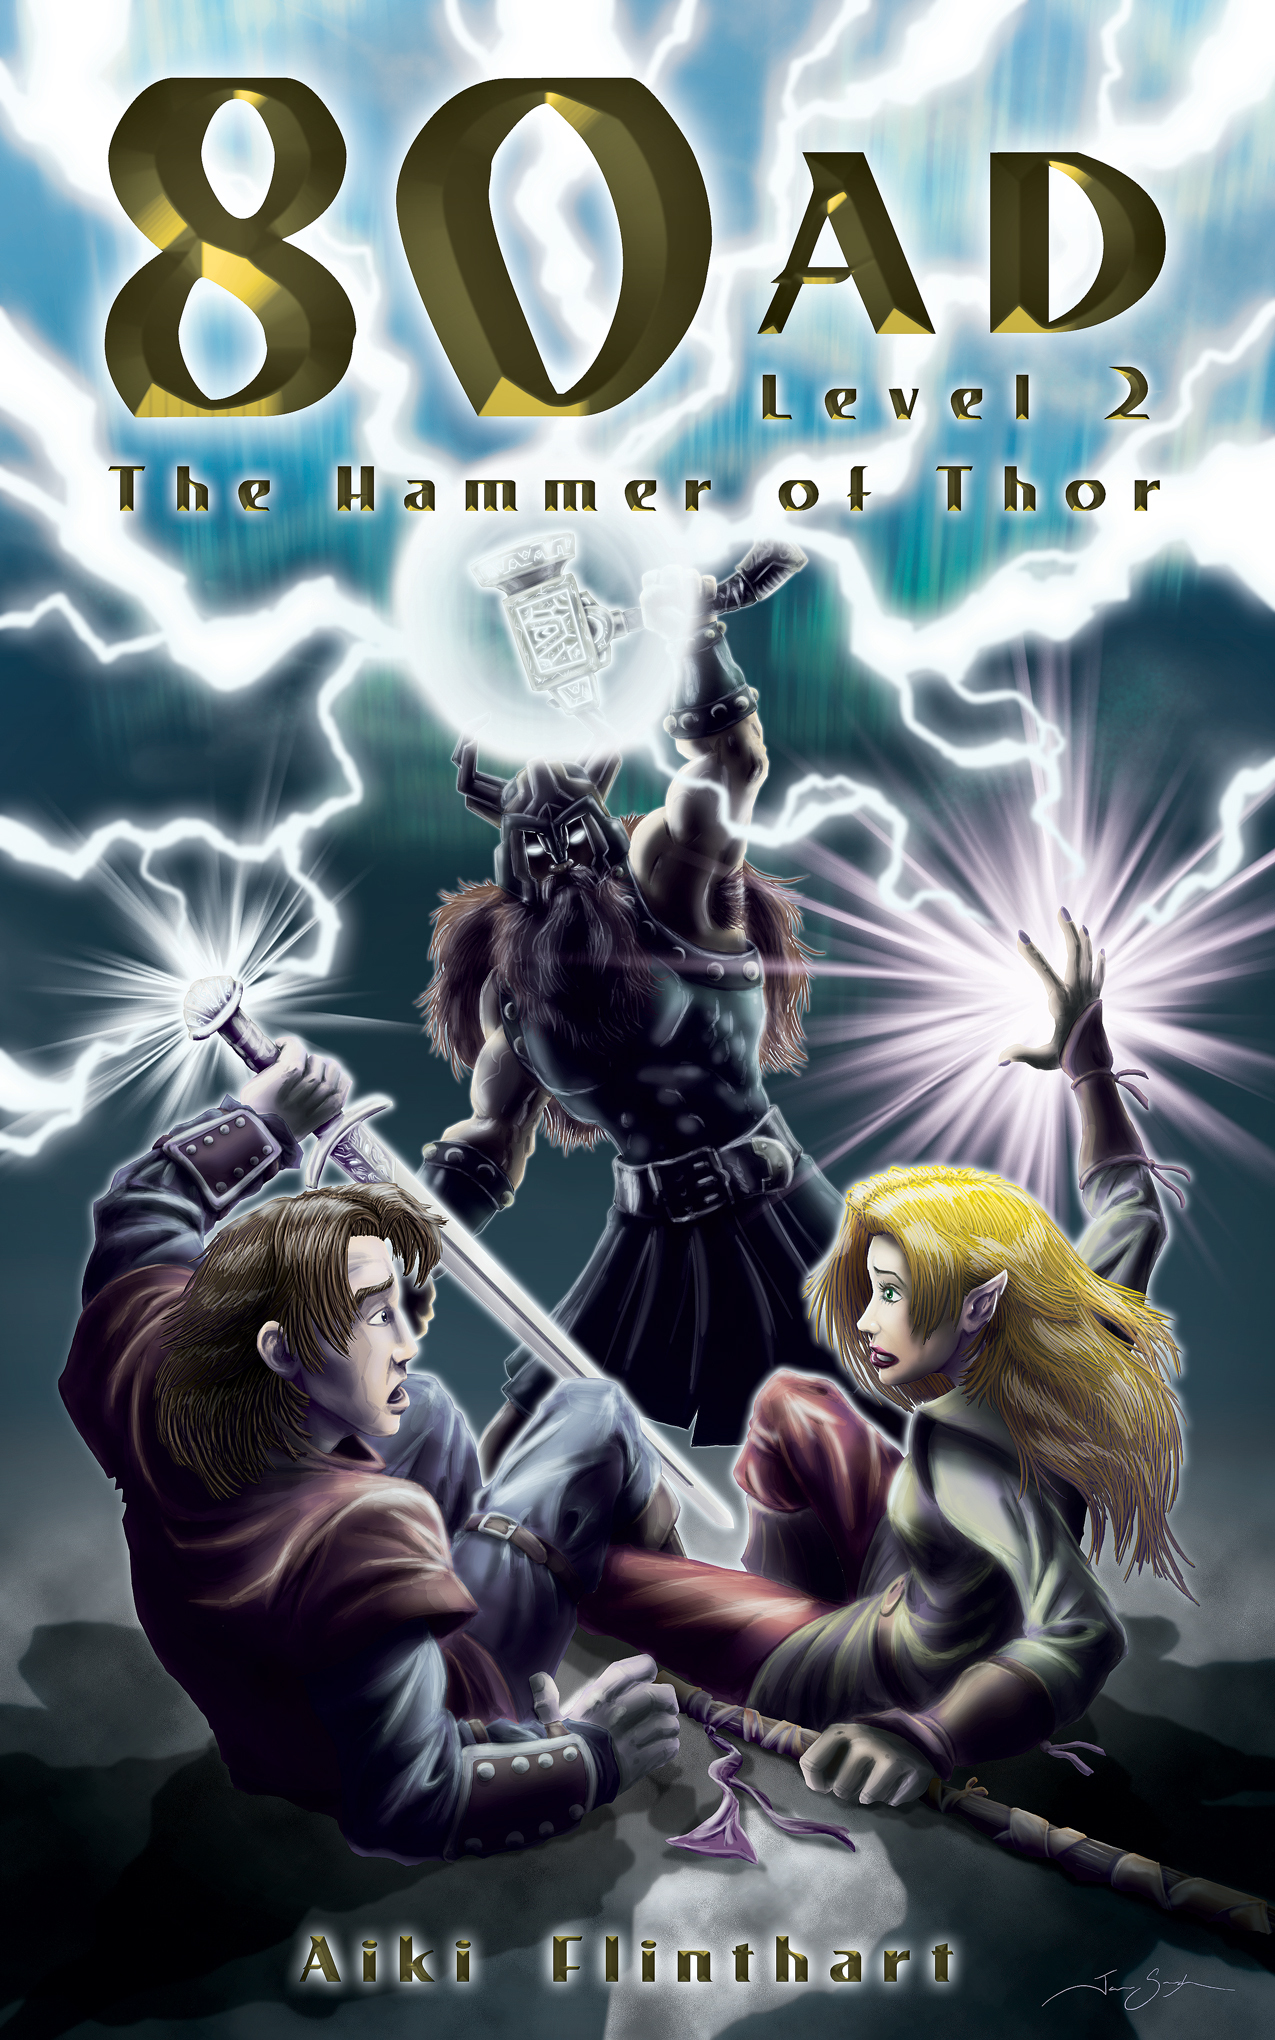 80AD - The Hammer of Thor (Book 2)